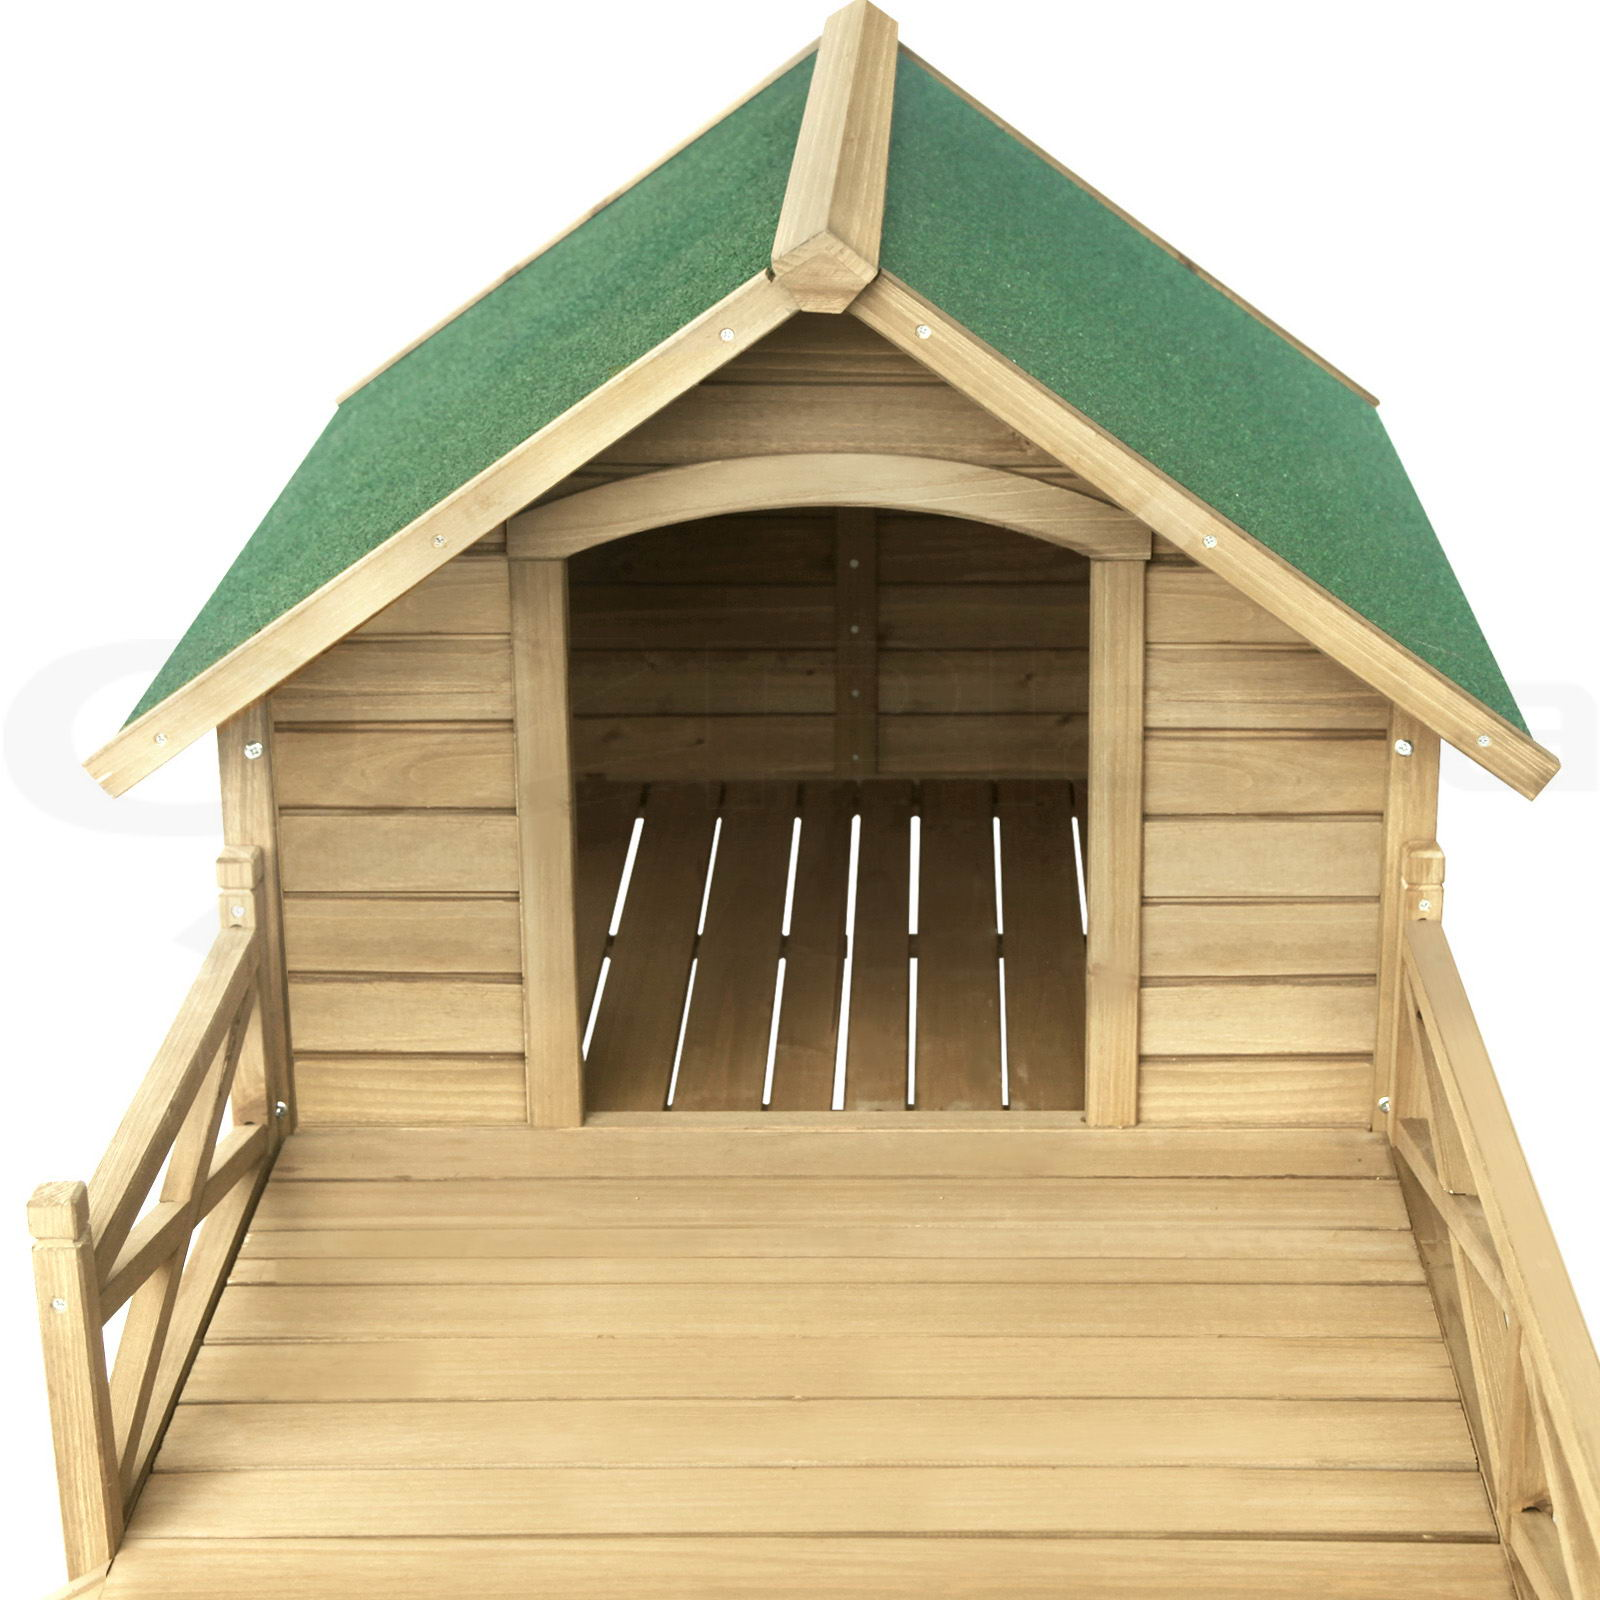 Extra large pet dog kennel house with patio wooden timber for Extra large dog house with porch